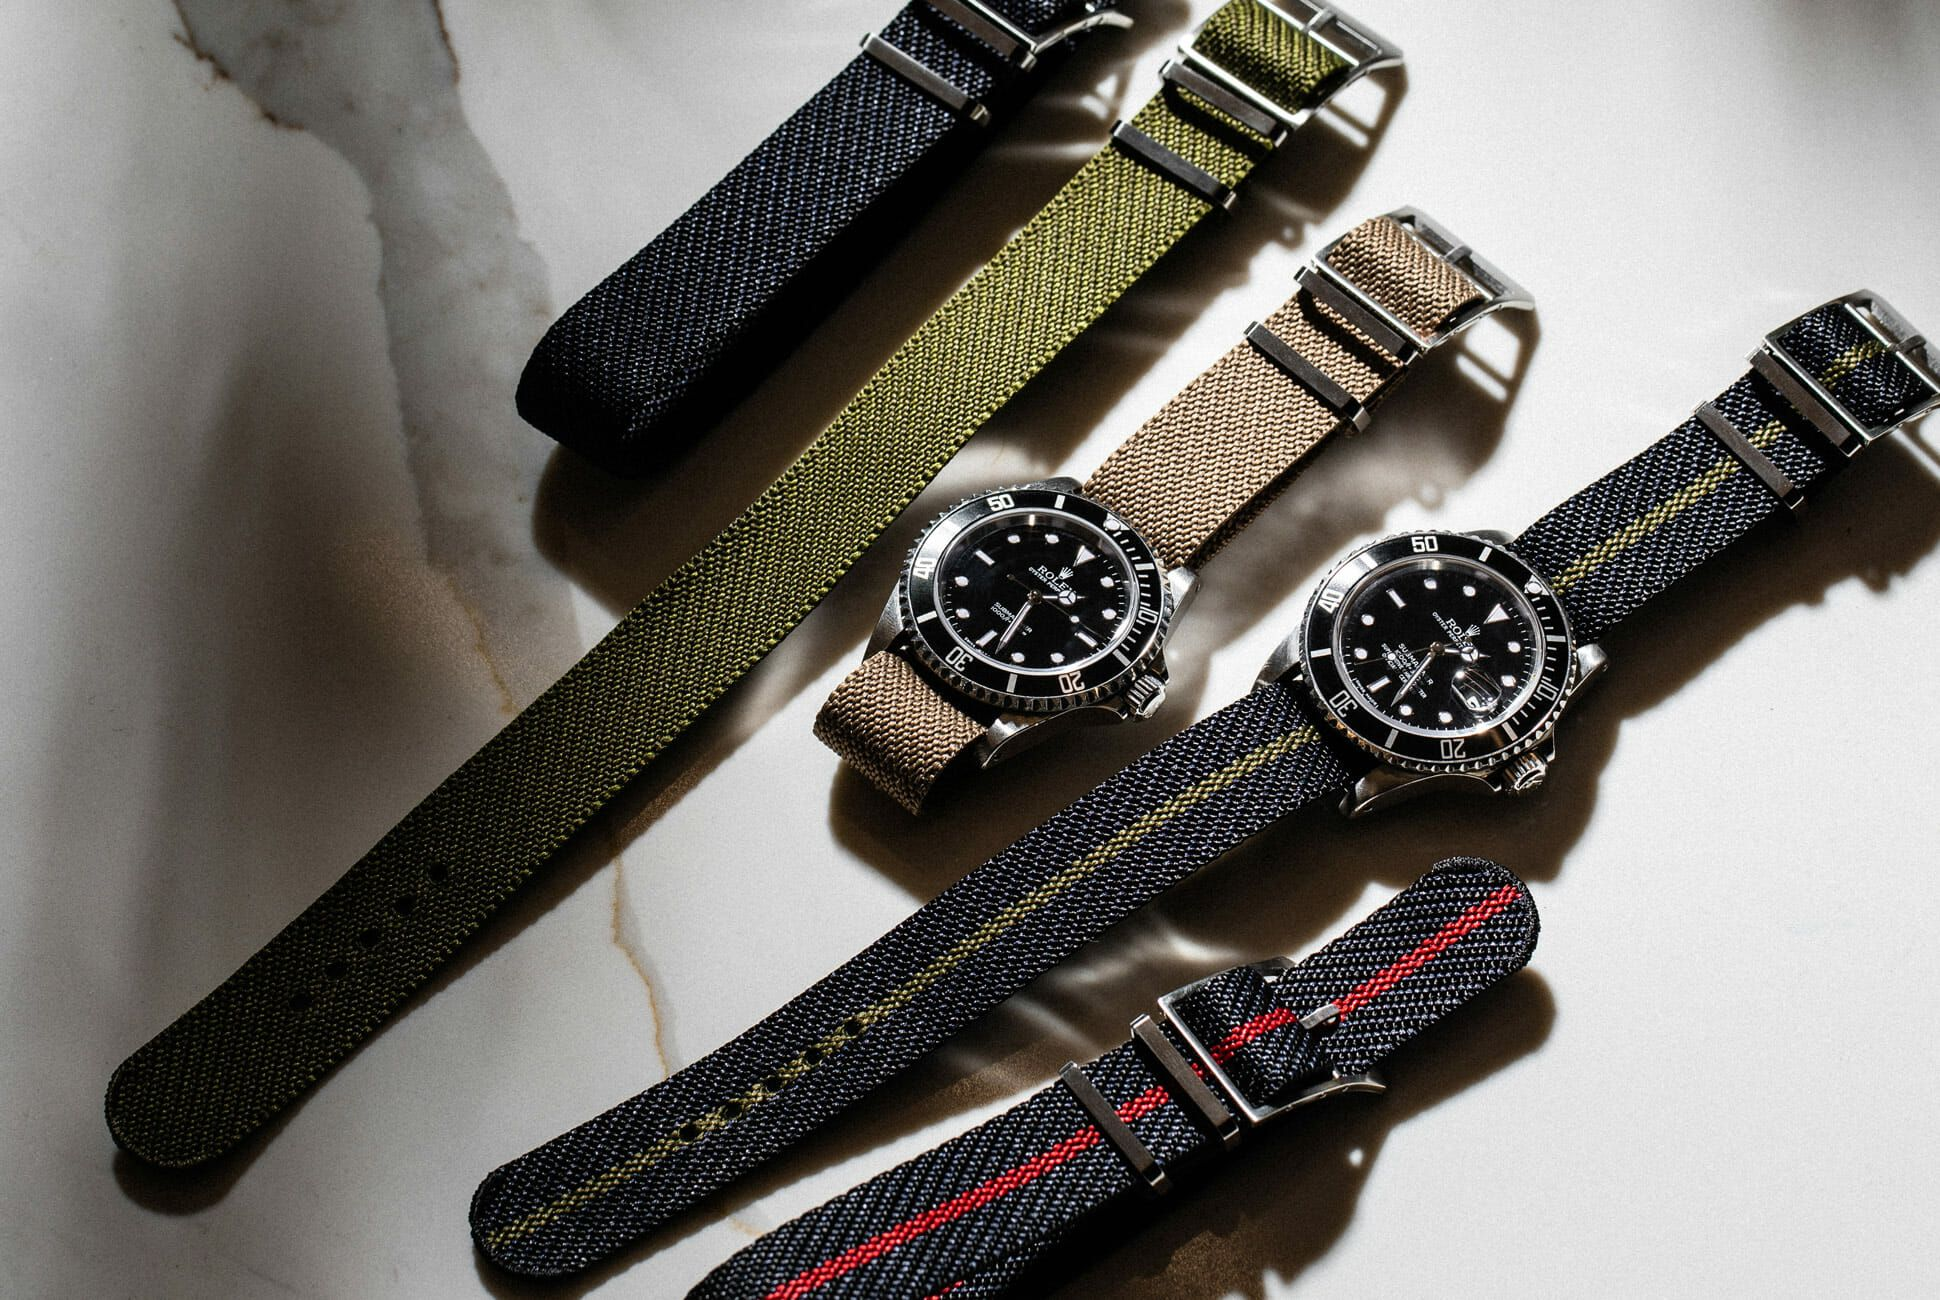 How to Pair the Rolex Submariner with the Right Watch Strap